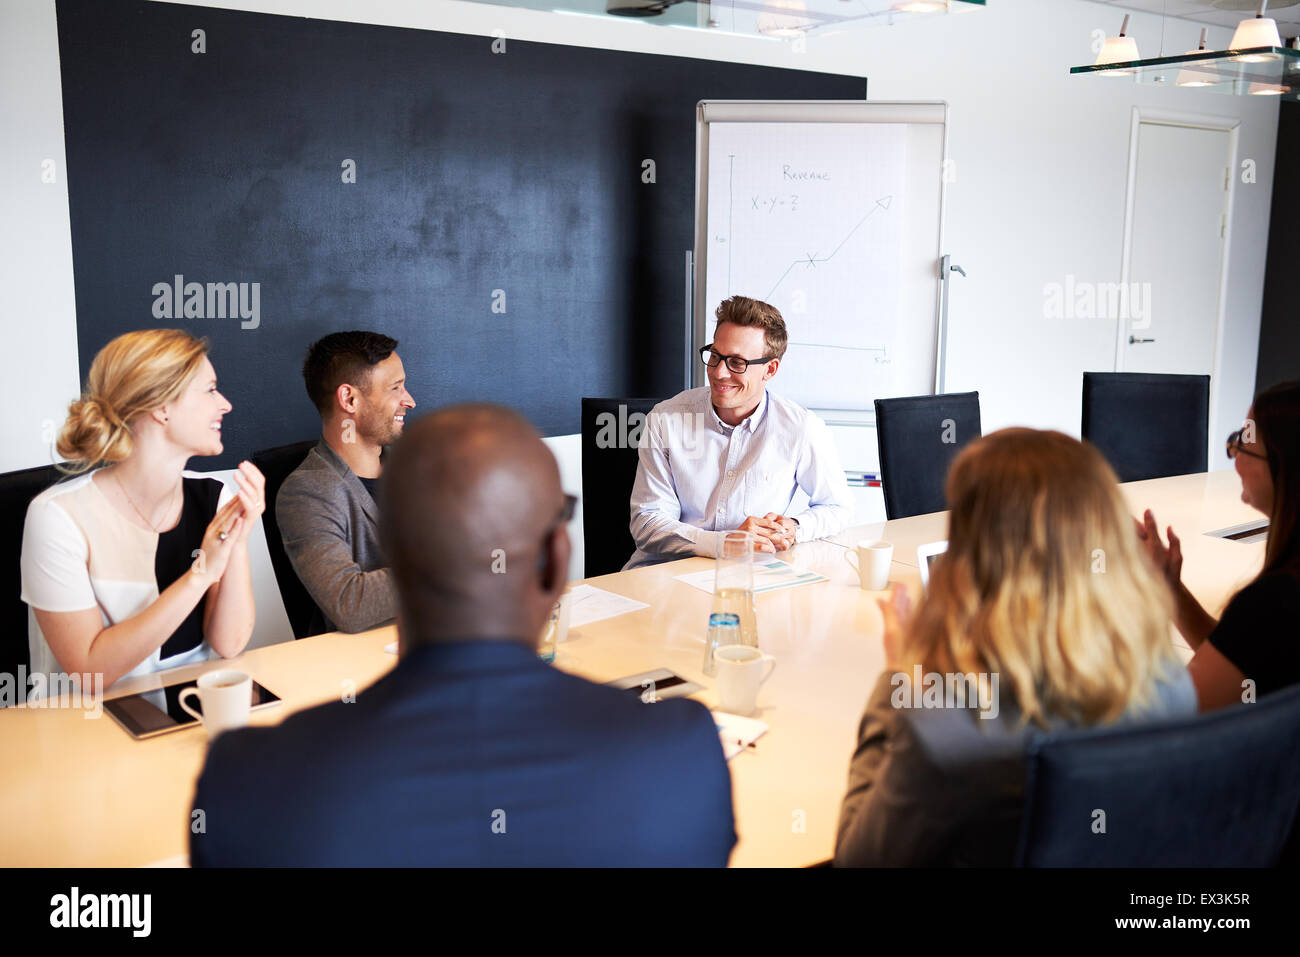 White male executive receiving applause from colleagues during a meeting - Stock Image